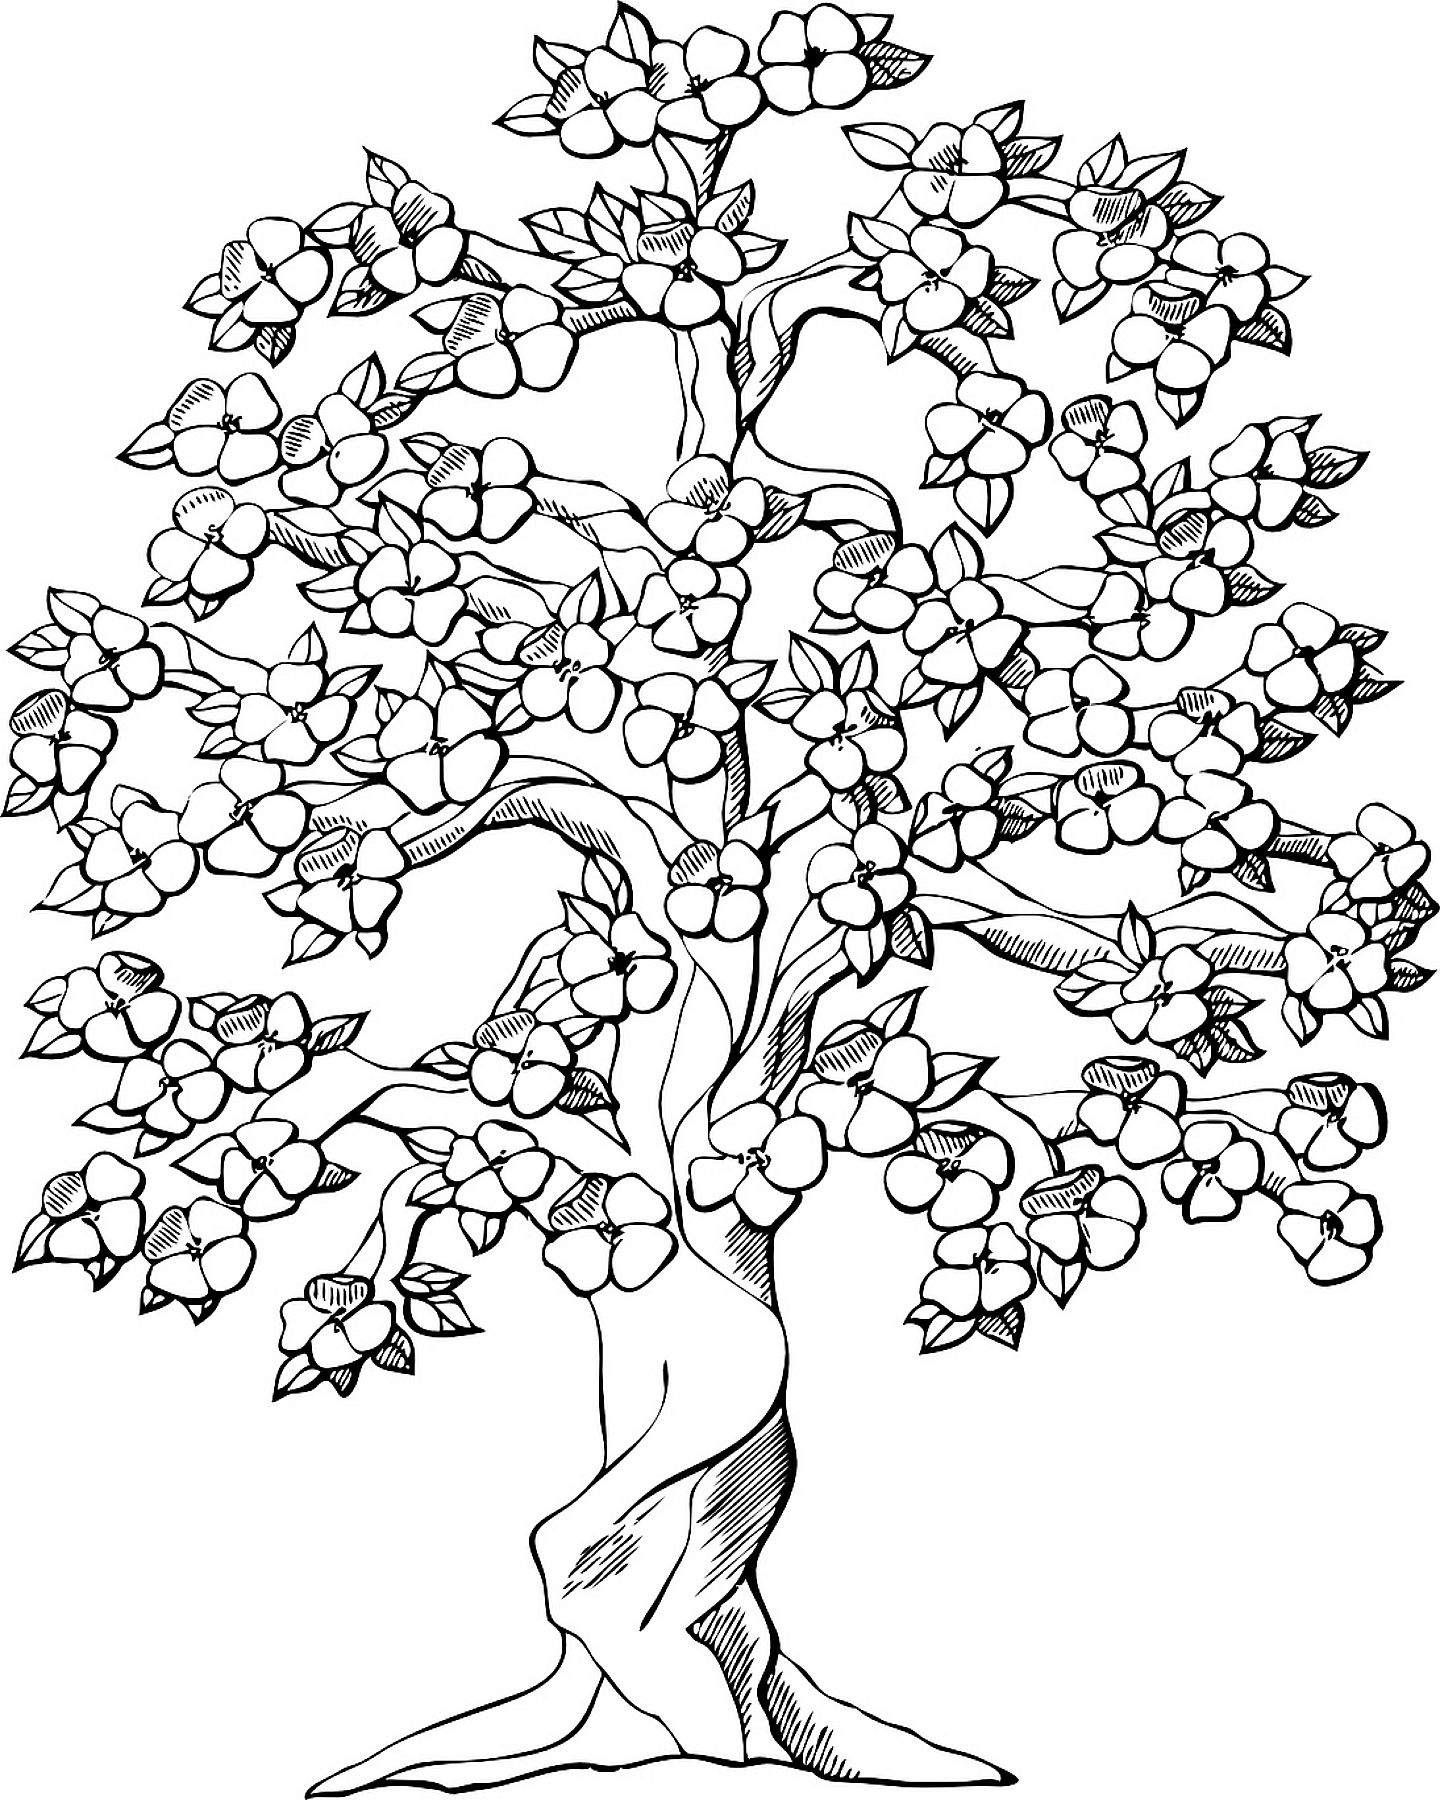 Plumeria Flowering Tree Coloring Page Tree Coloring Page Flower